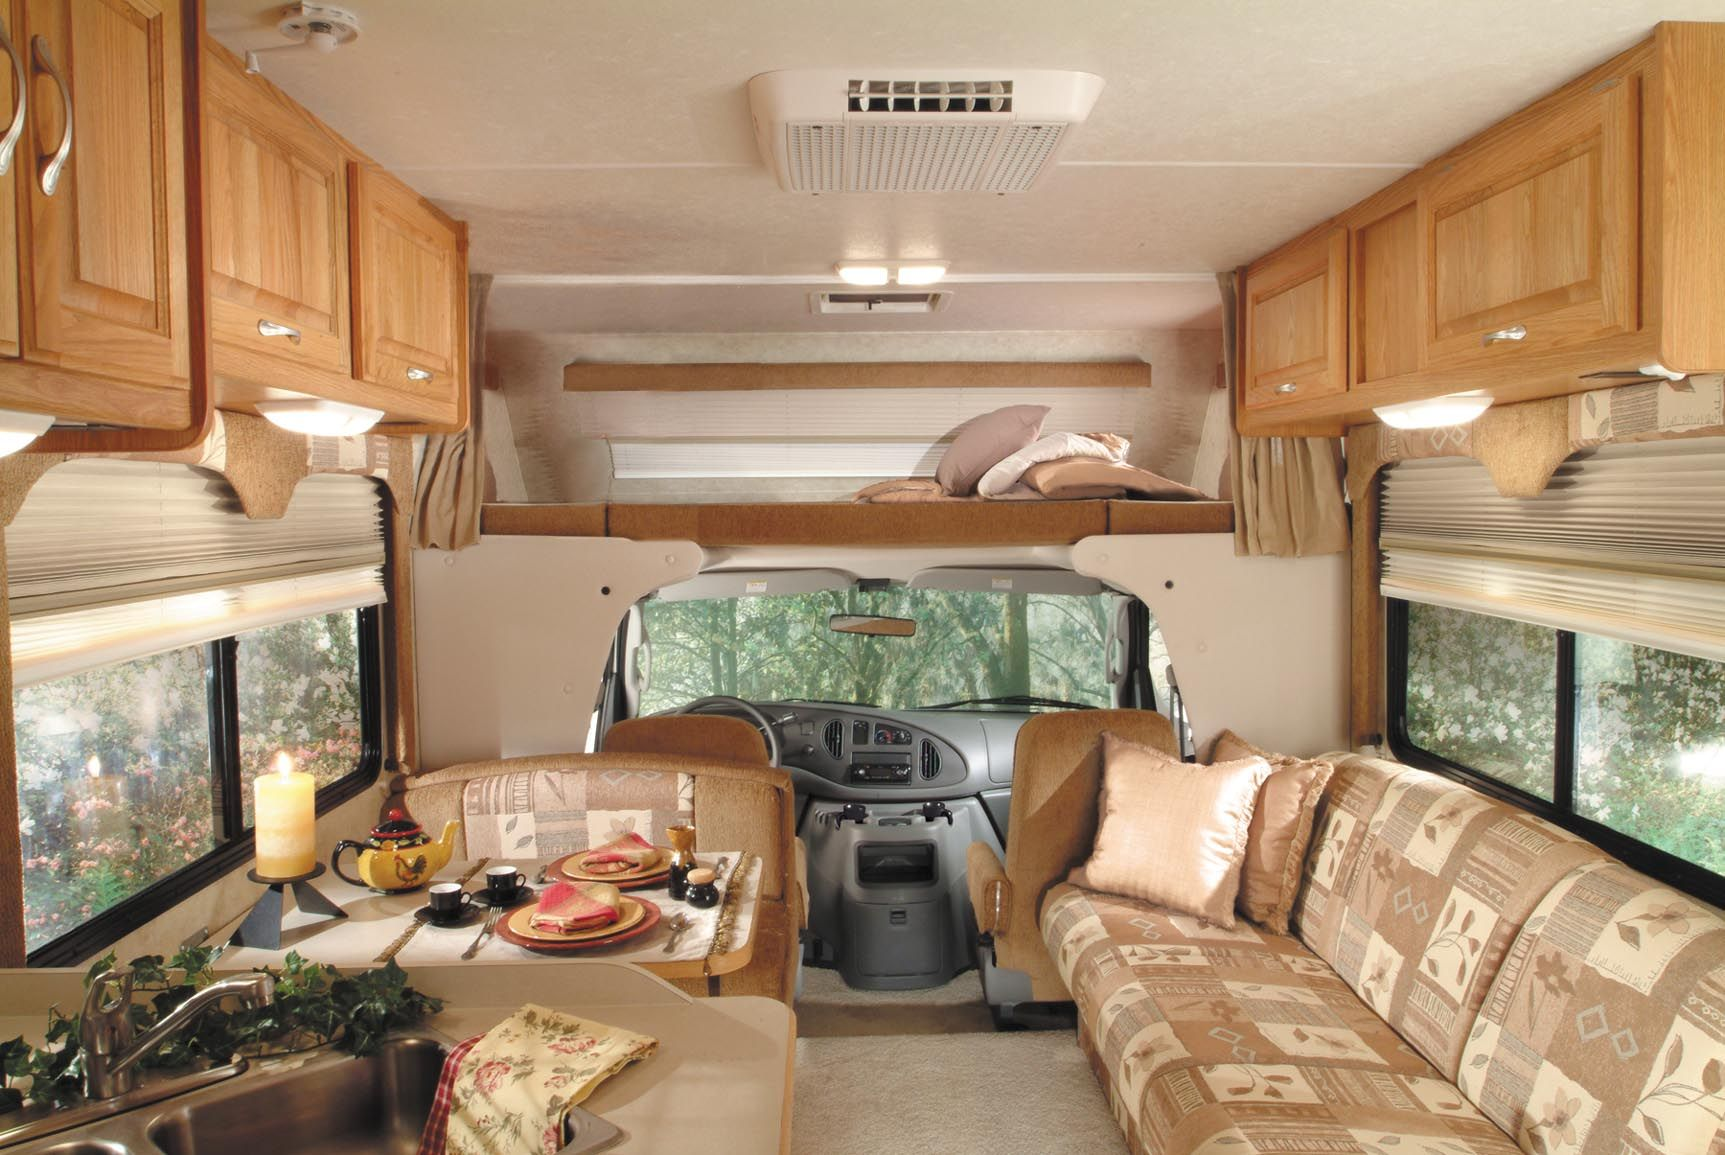 Luxurious Motorhomes Interior Interior Picture Of The Front Of A